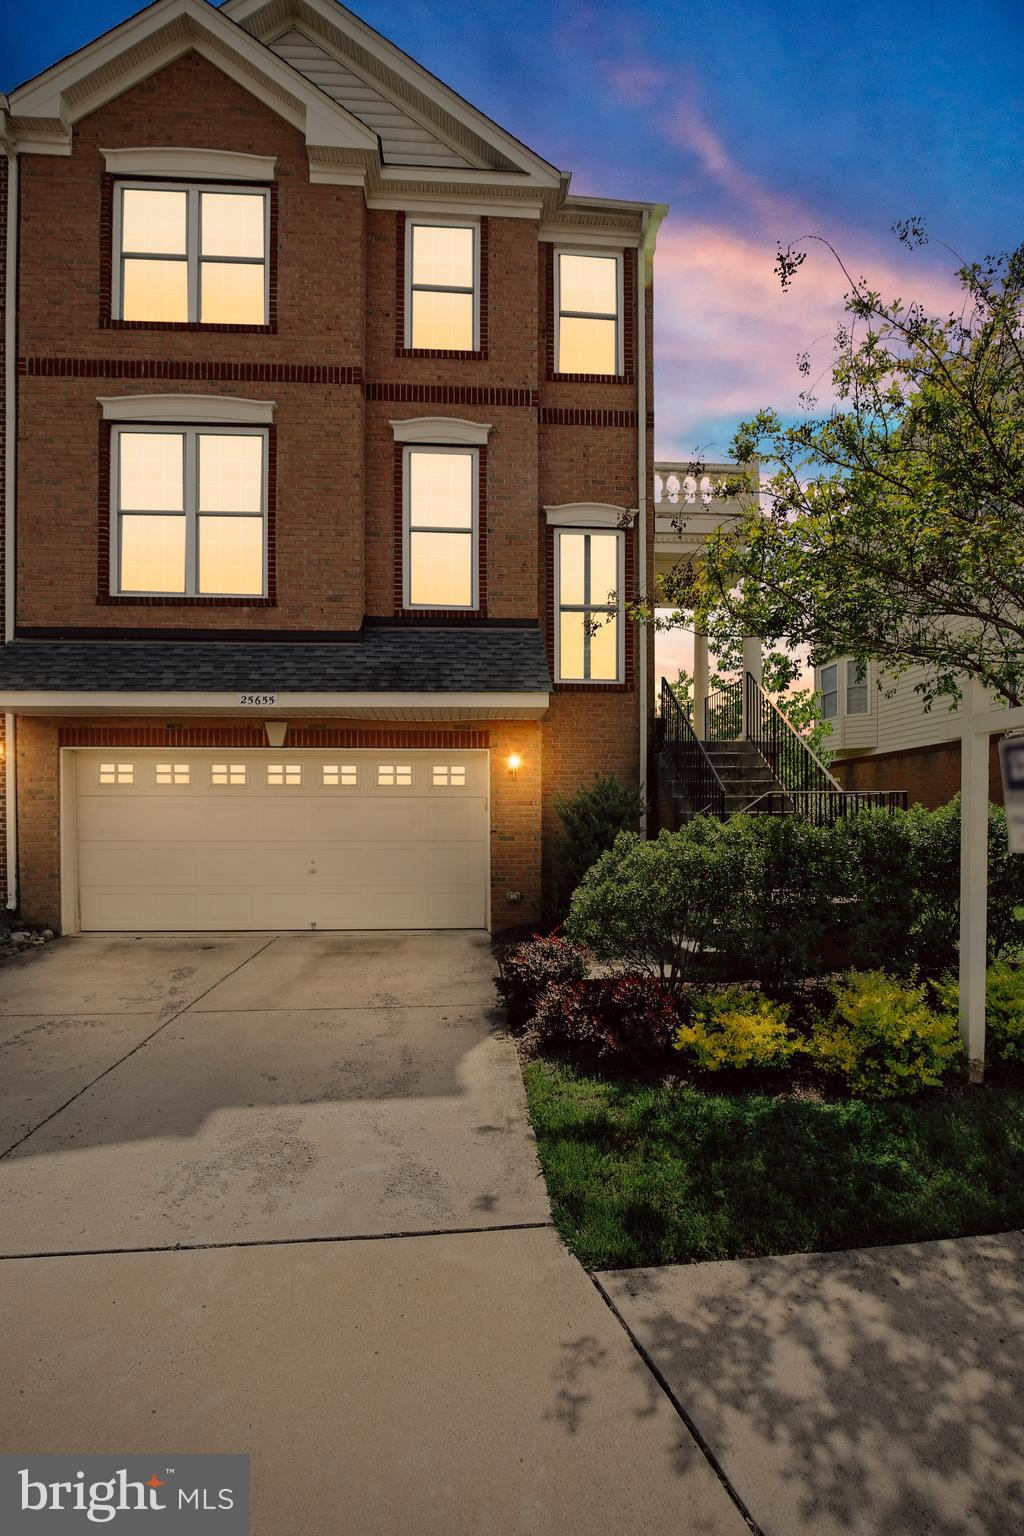 This beautiful home will win you over the moment you pull into the driveway. Nestled on a verdant lo